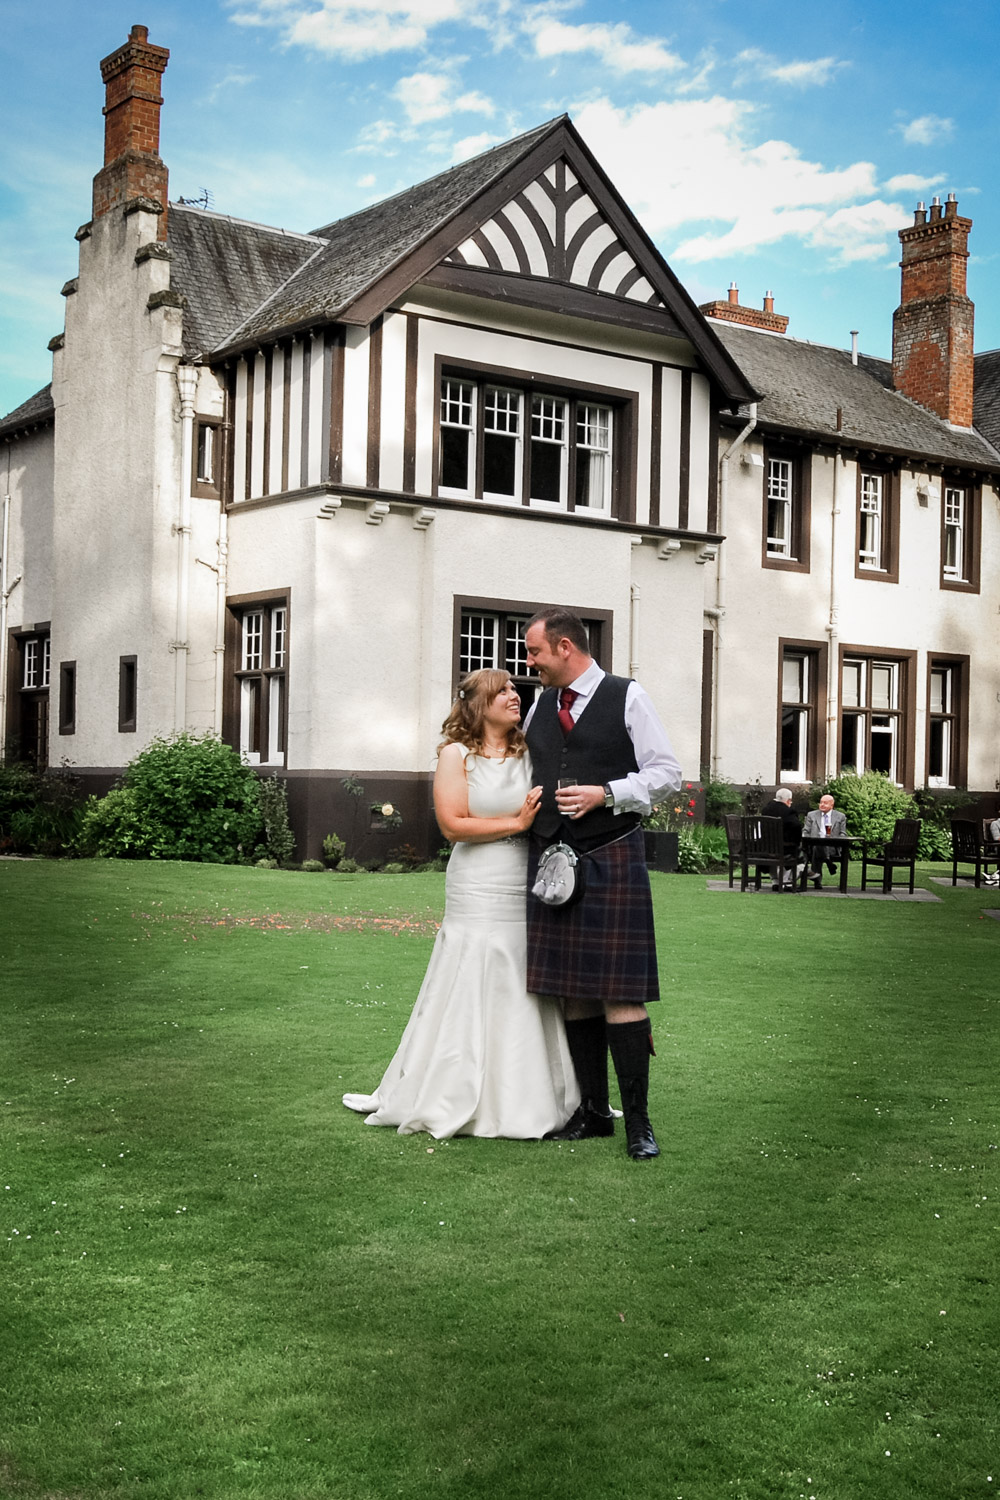 Cat & Steve - Love our wedding photos. Ali captured the day brilliantly from beginning to end x- Huntington Tower Hotel, Perth